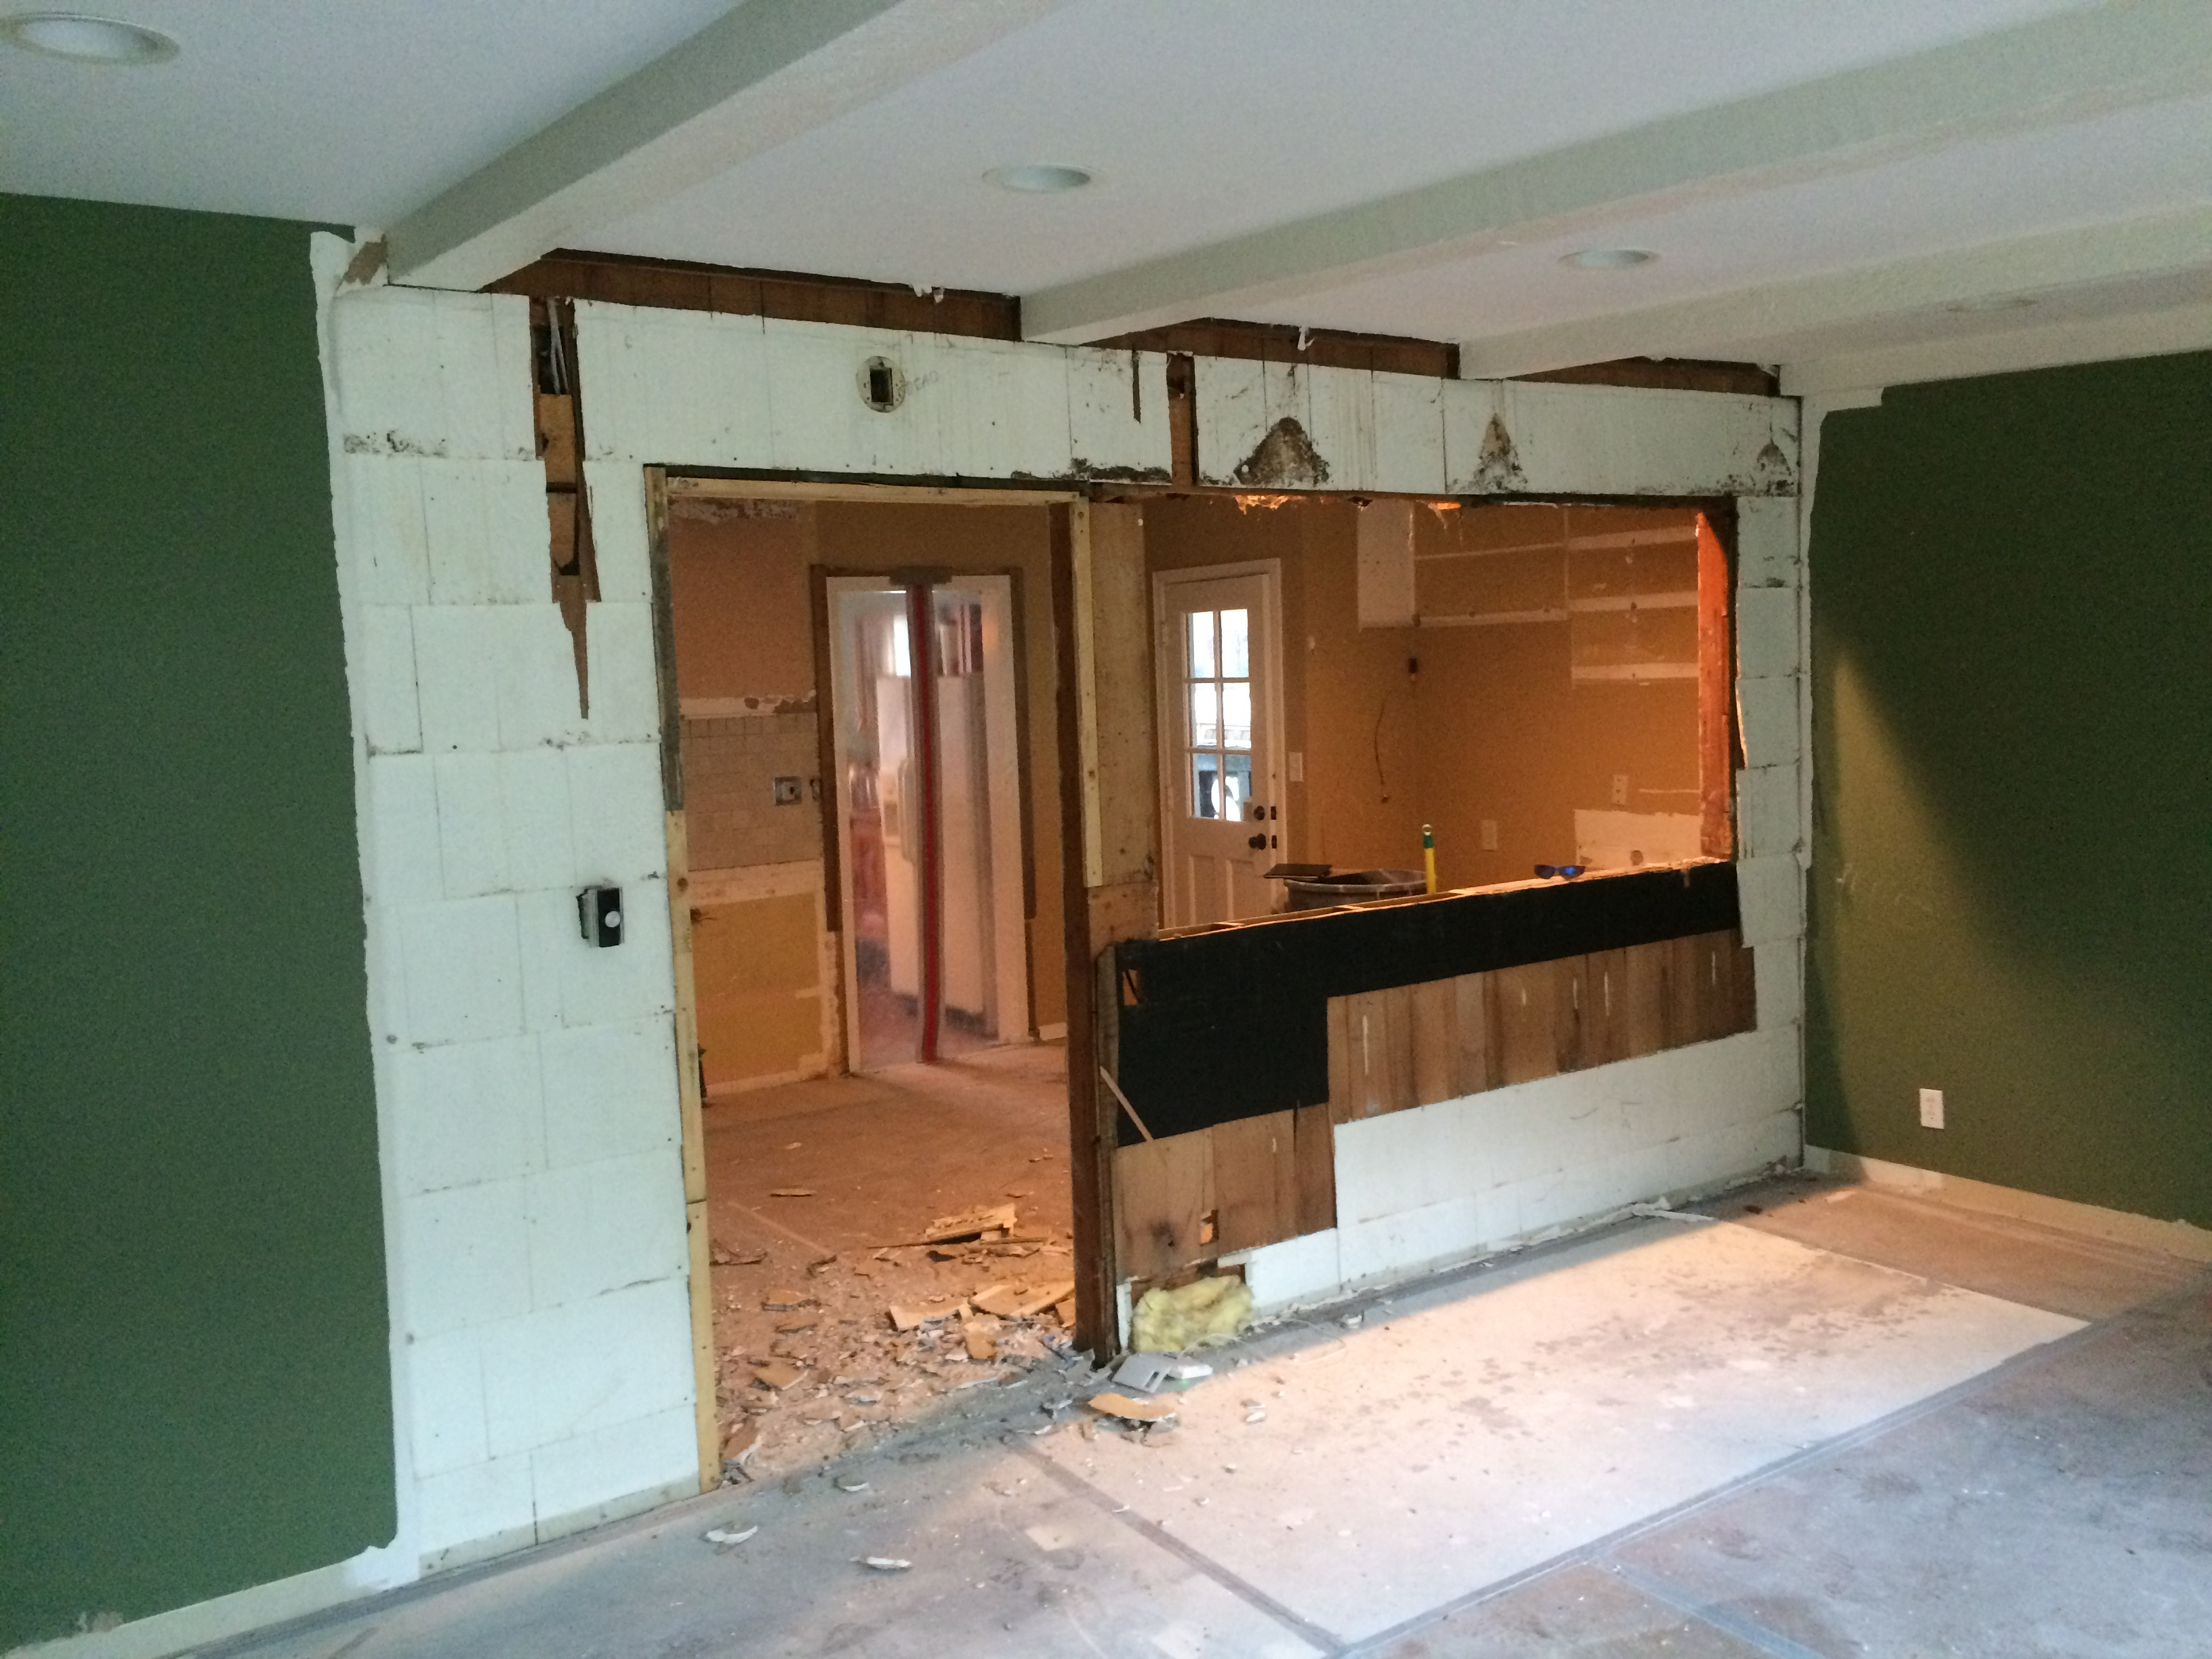 demolition of the kitchen post